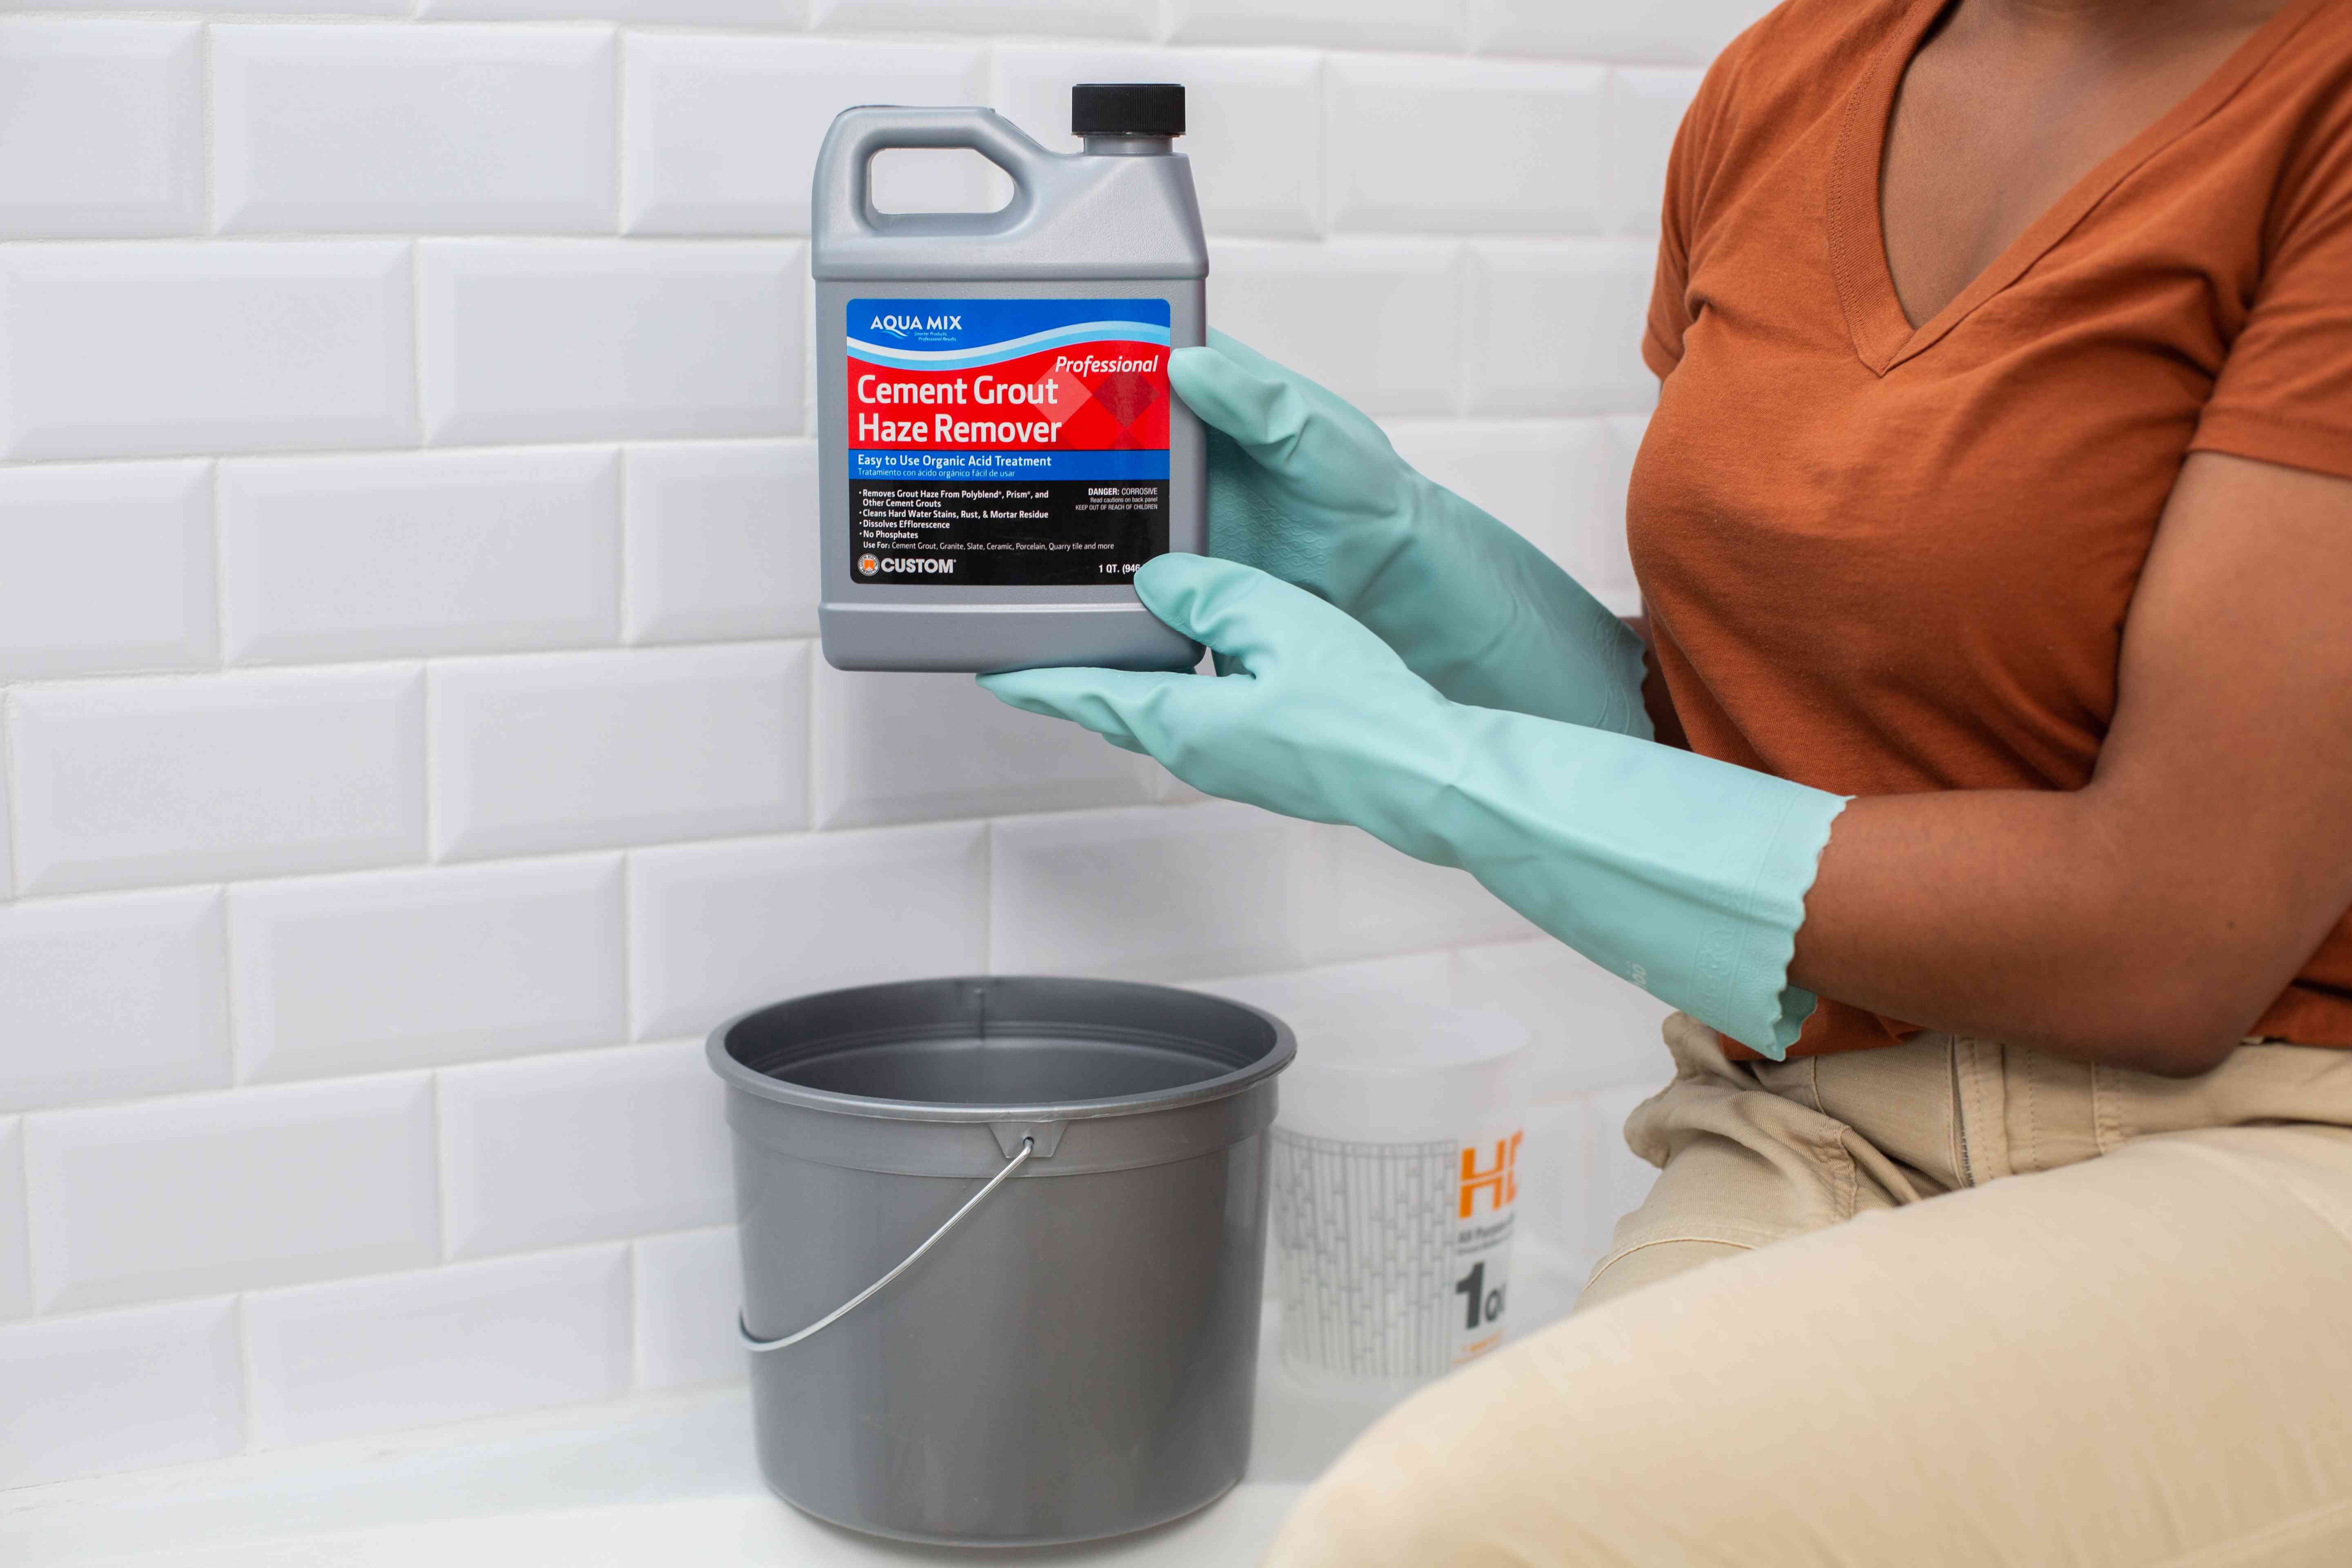 Grout haze remover bottle held over gray bucket with teal latex gloves